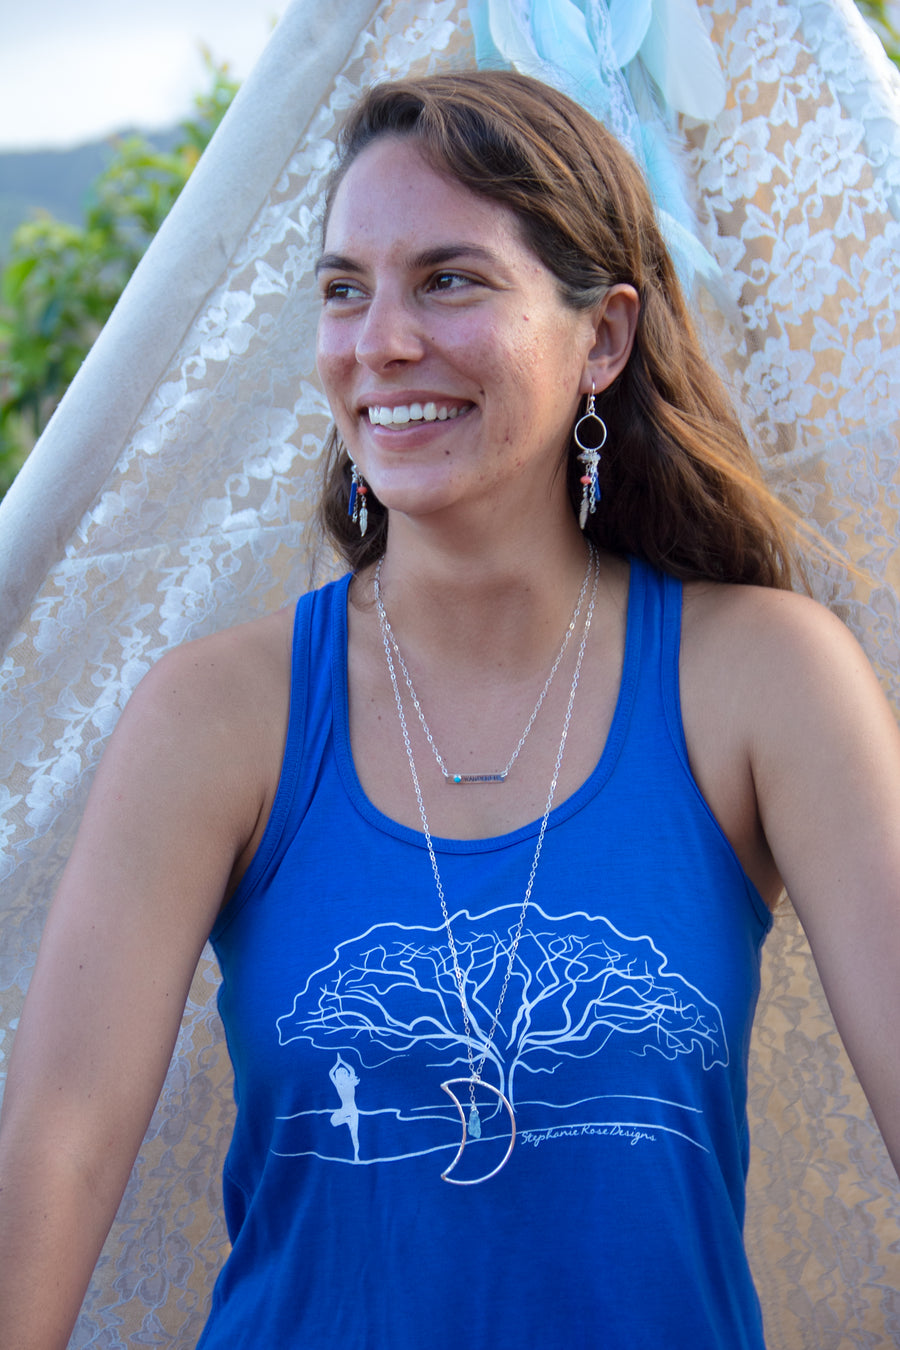 Tree Pose Yoga Top - Inspired by Stephanie Rose